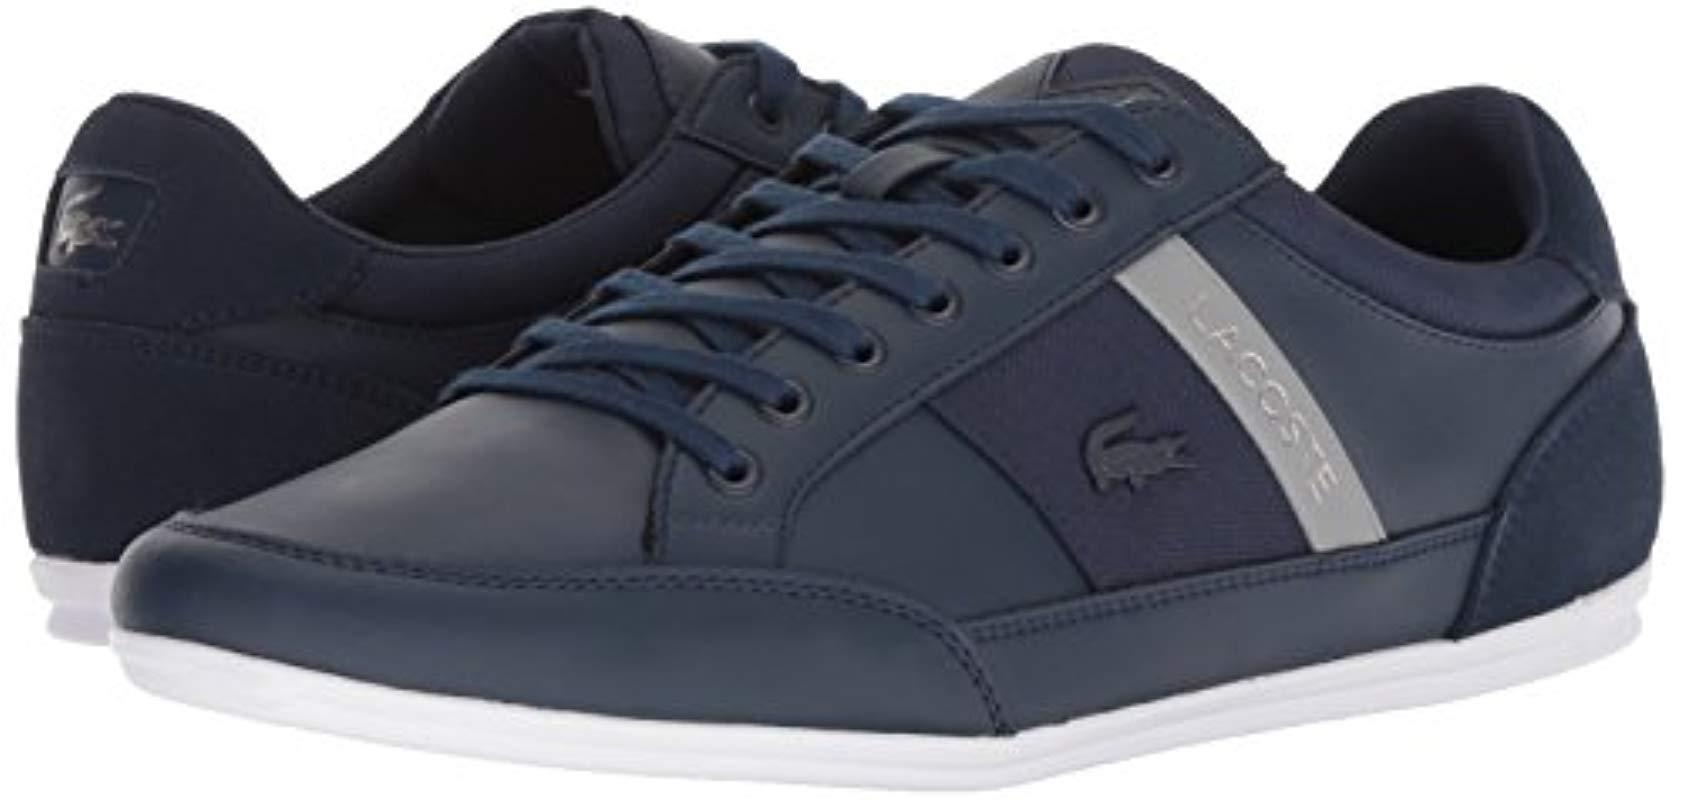 Lacoste Chaymon 318 3 Cheaper Than Retail Price Buy Clothing Accessories And Lifestyle Products For Women Men